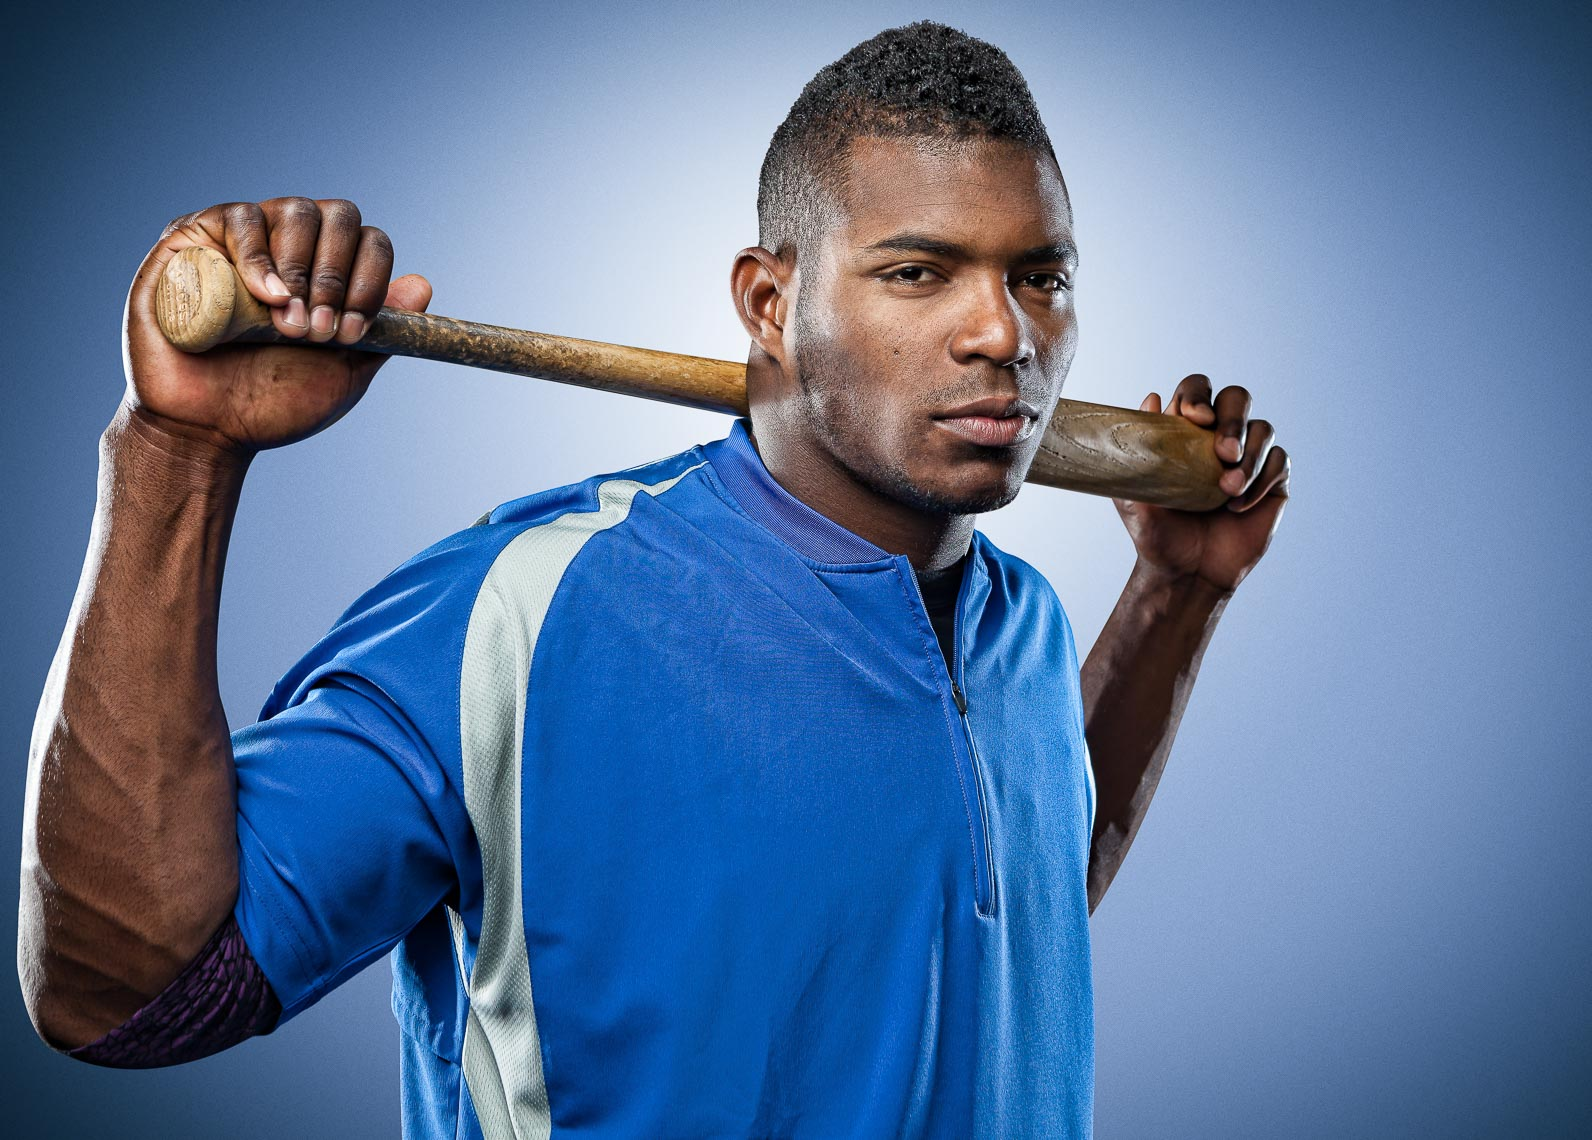 Yasiel_Puig_7.30_EDIT_HIGH_RES